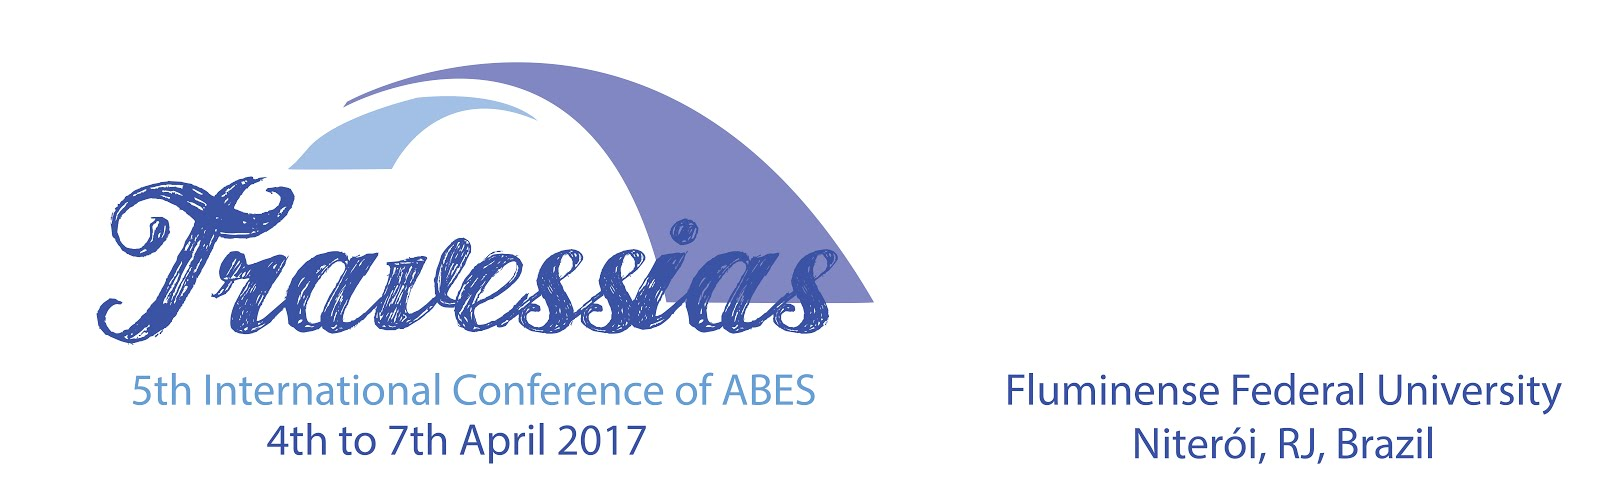 Travessias - 5th International Conference of ABES